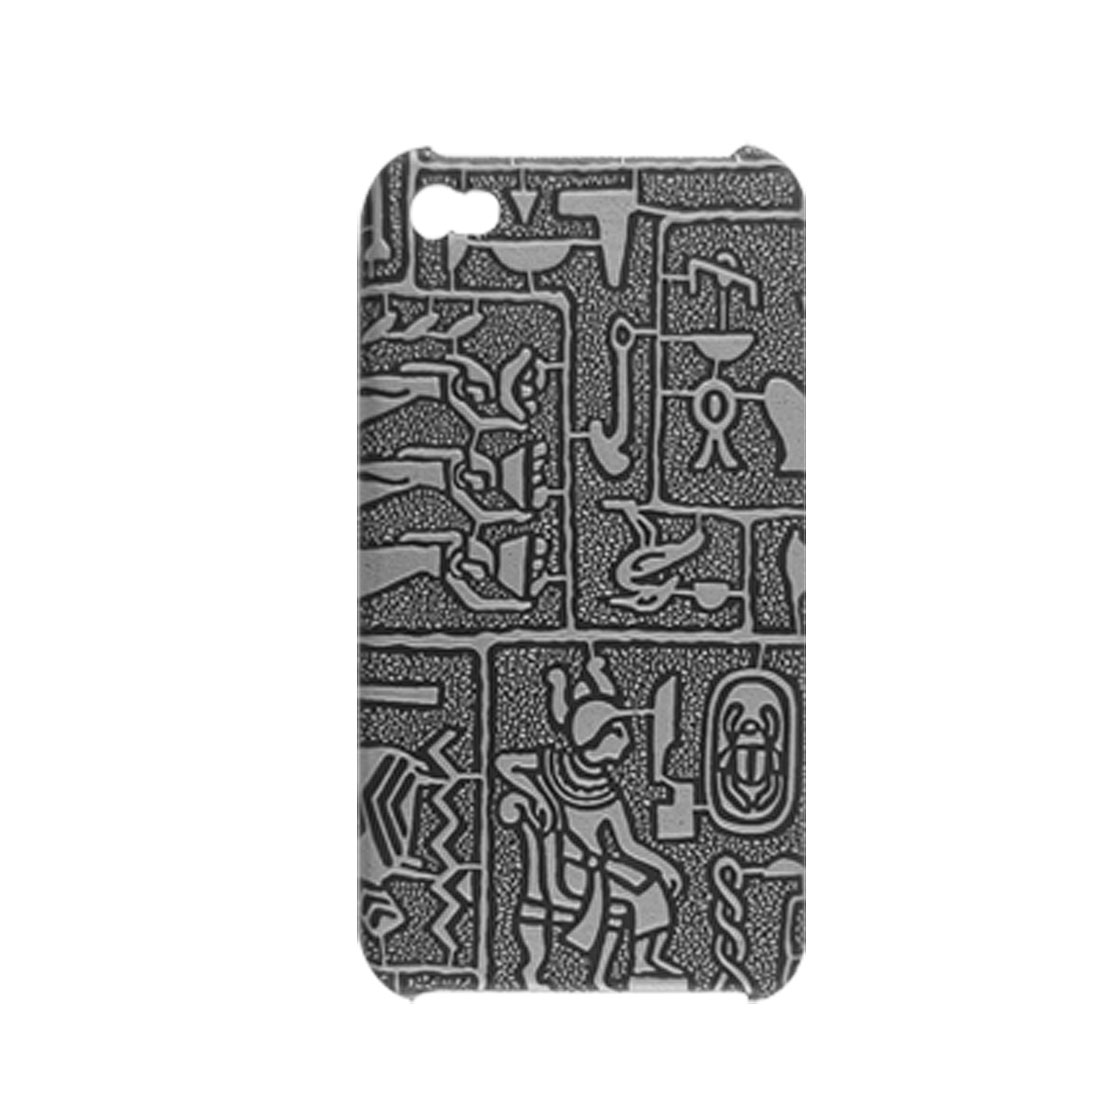 Gray Ancient Wall Painting Coated Plastic Cover for iPhone 4 4G